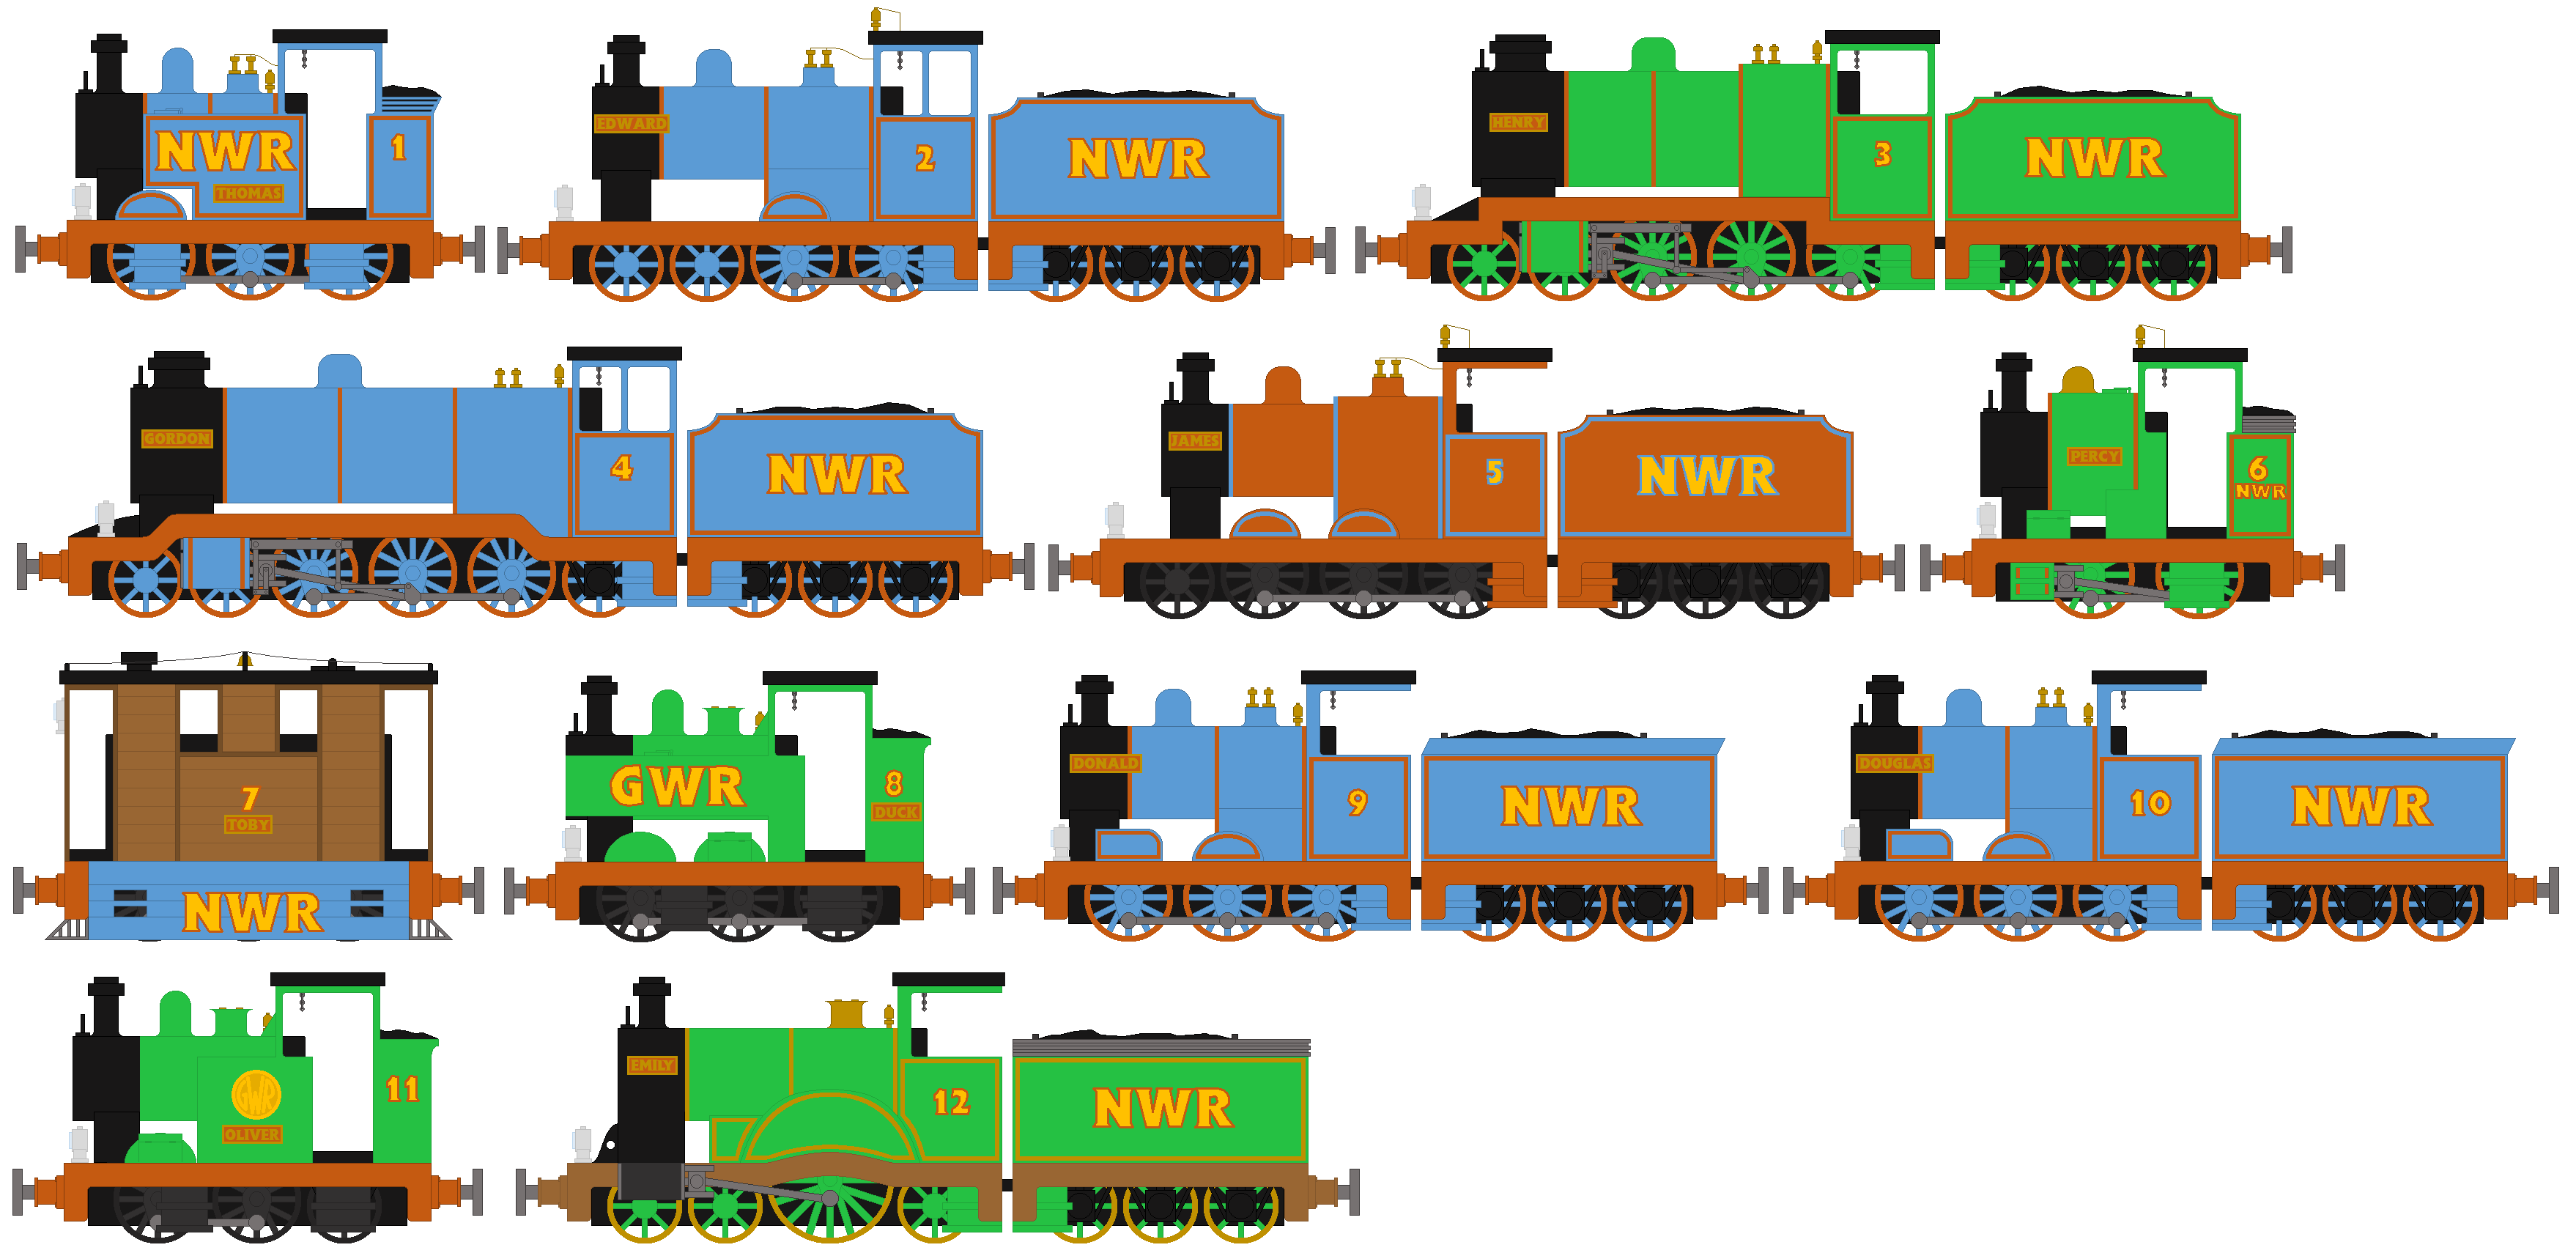 Image boco in trainz thomas and friends png scratchpad fandom - Theausterityengine Ttte Engines Pt1 Nwr Steam By Theausterityengine